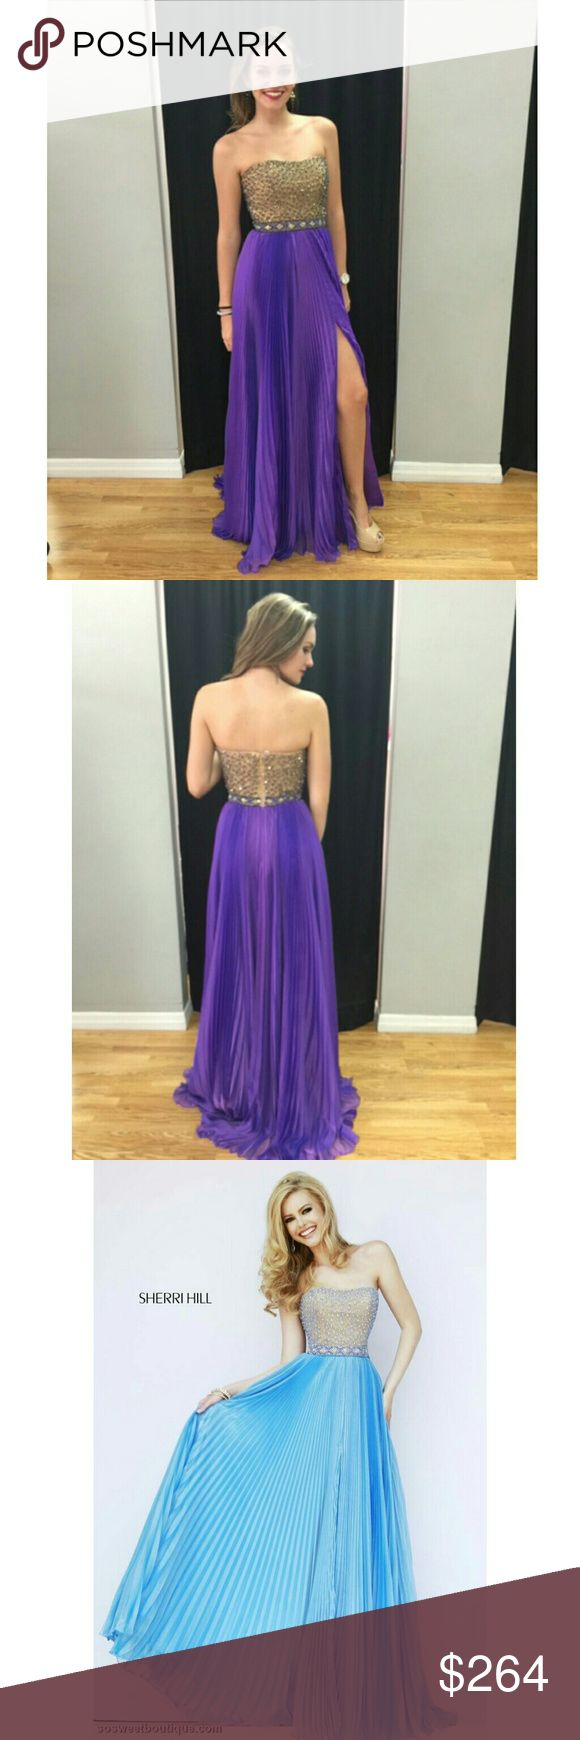 Sherri Hill Prom Dress Prom Gown Style 32143 AUTHENTIC SHERRI HILL PROM GOWN: Avoid online shopping nightmares by staying away from cheap prom dress knockoffs! This item is from a certified Sherri-approved retailer so you can rest assured knowing that you will be wearing a genuine designer prom gown at Prom2k17.    BRING ON THE BLING: This gown is delicately embellished with only the best materials and adornments. Your friends will definitely be impressed with your gorgeous & glitzy long…